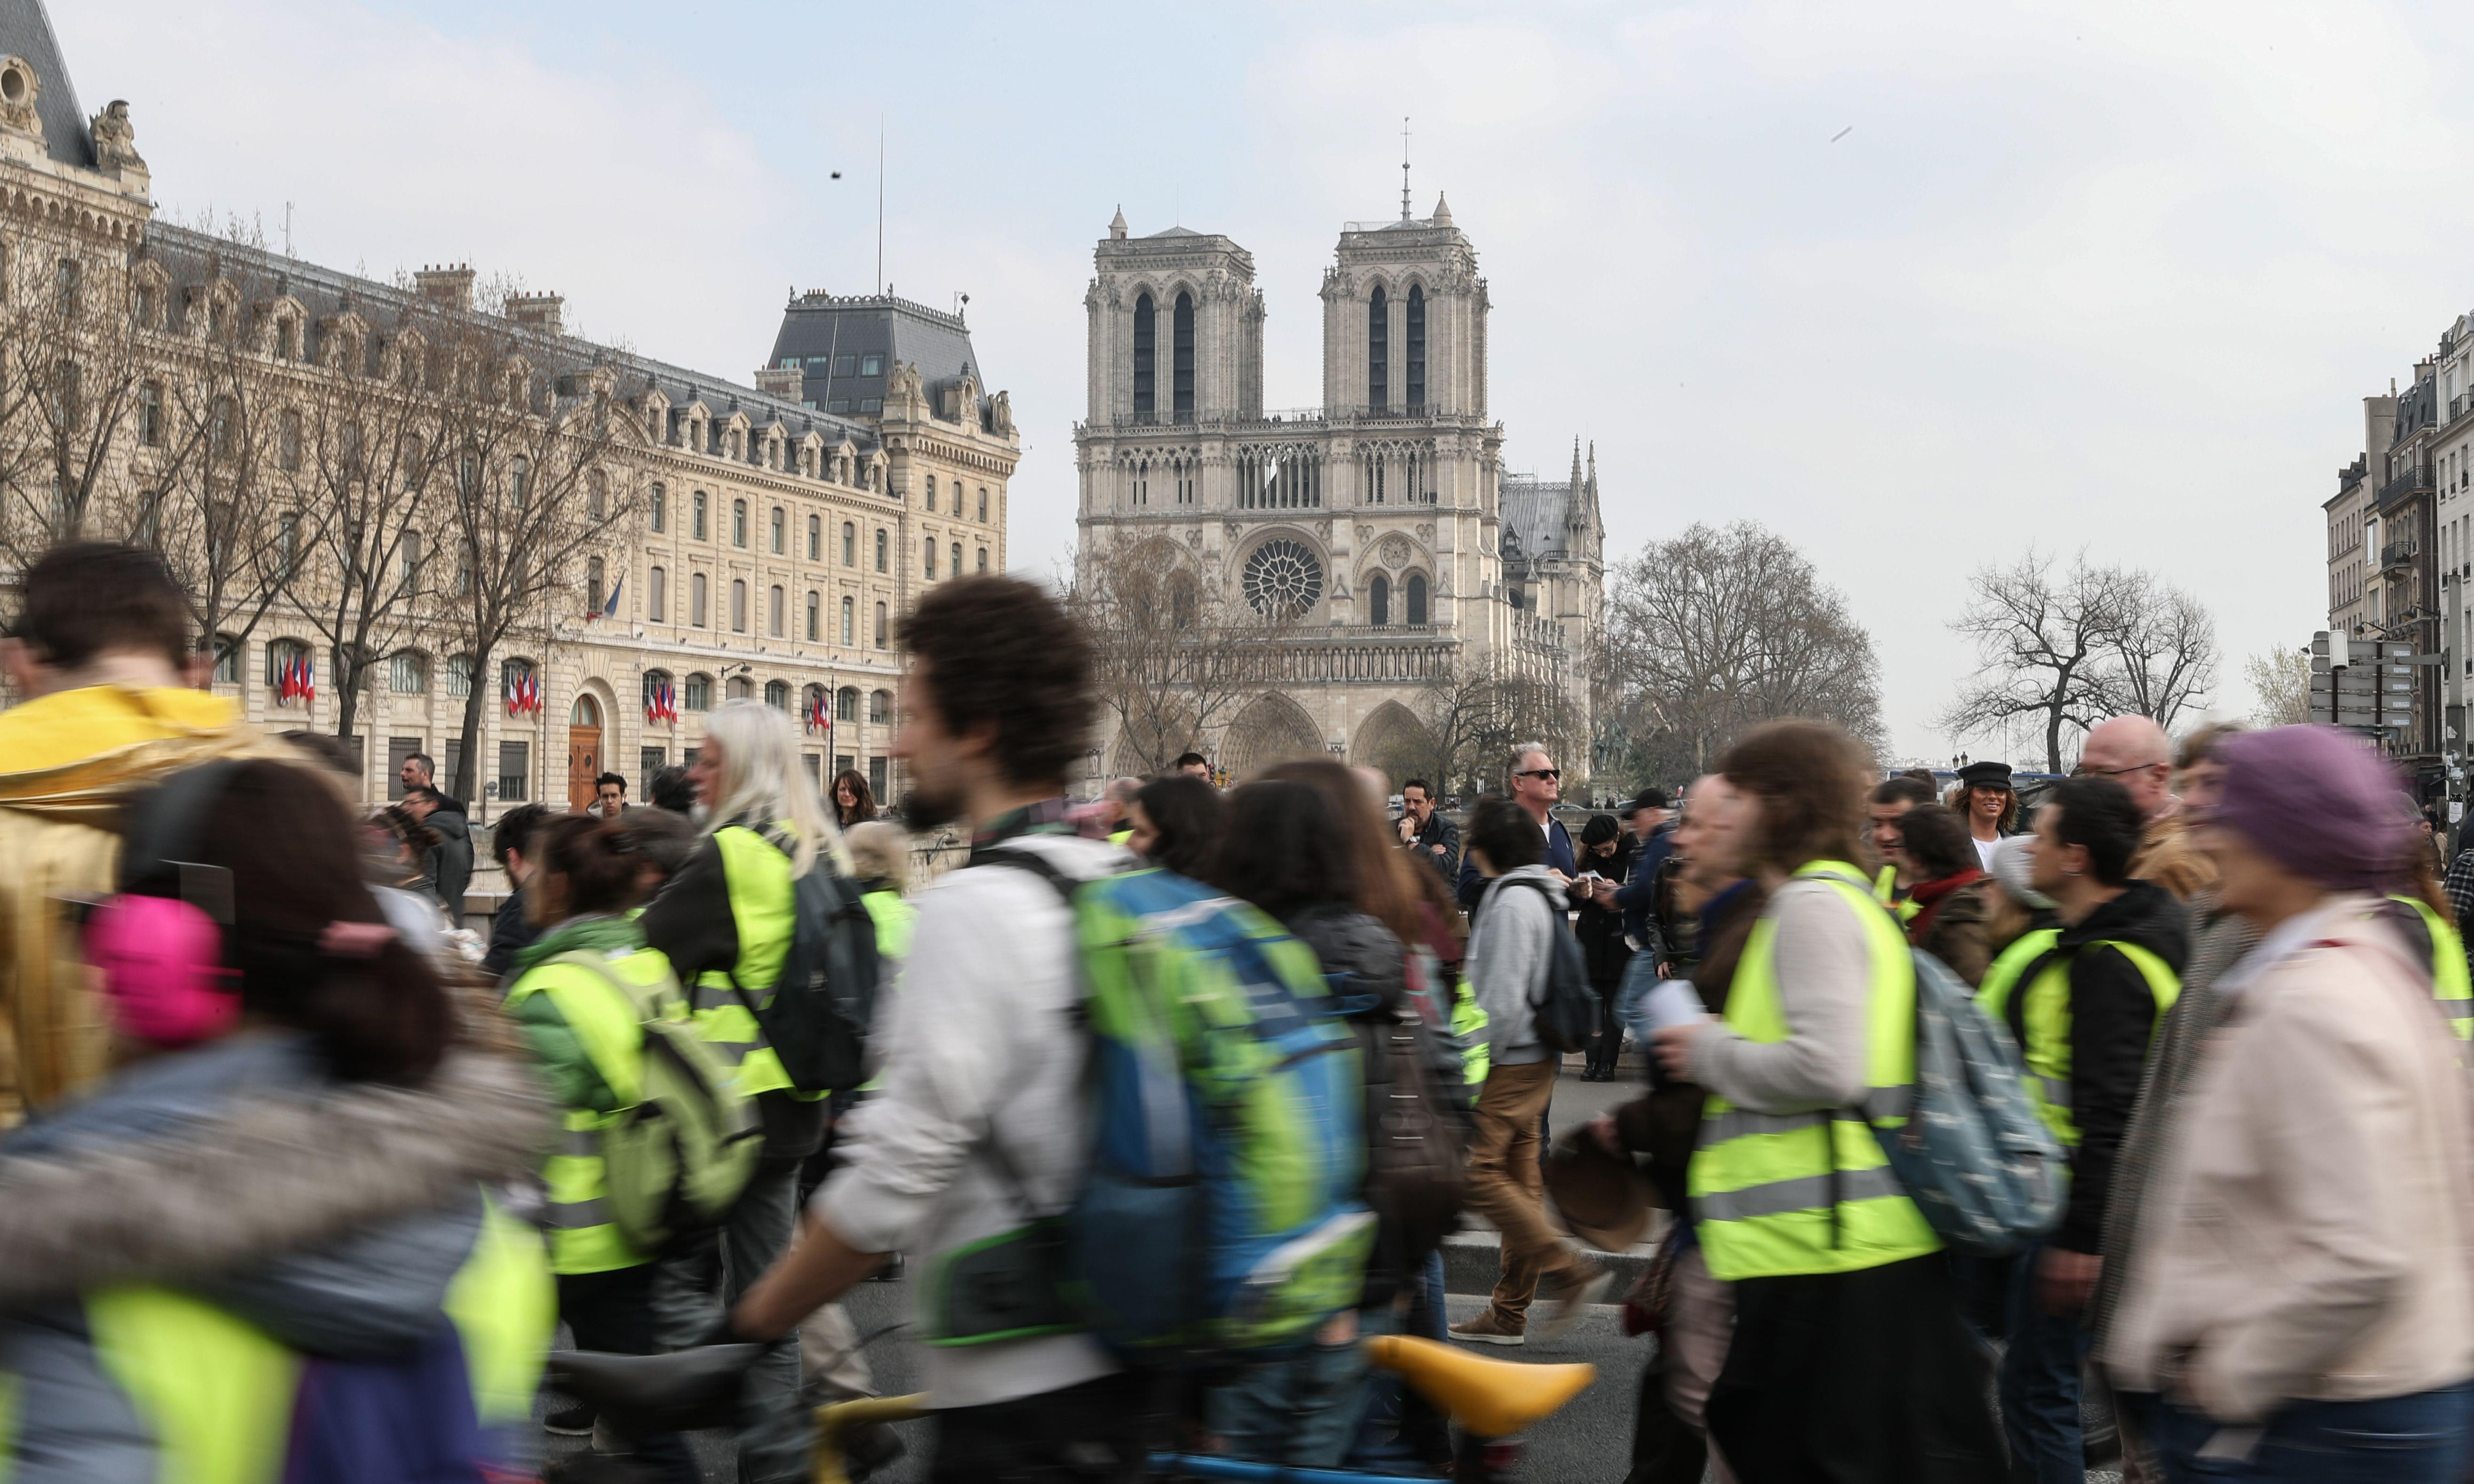 Gilets jaunes banned from protesting near Notre Dame in Paris